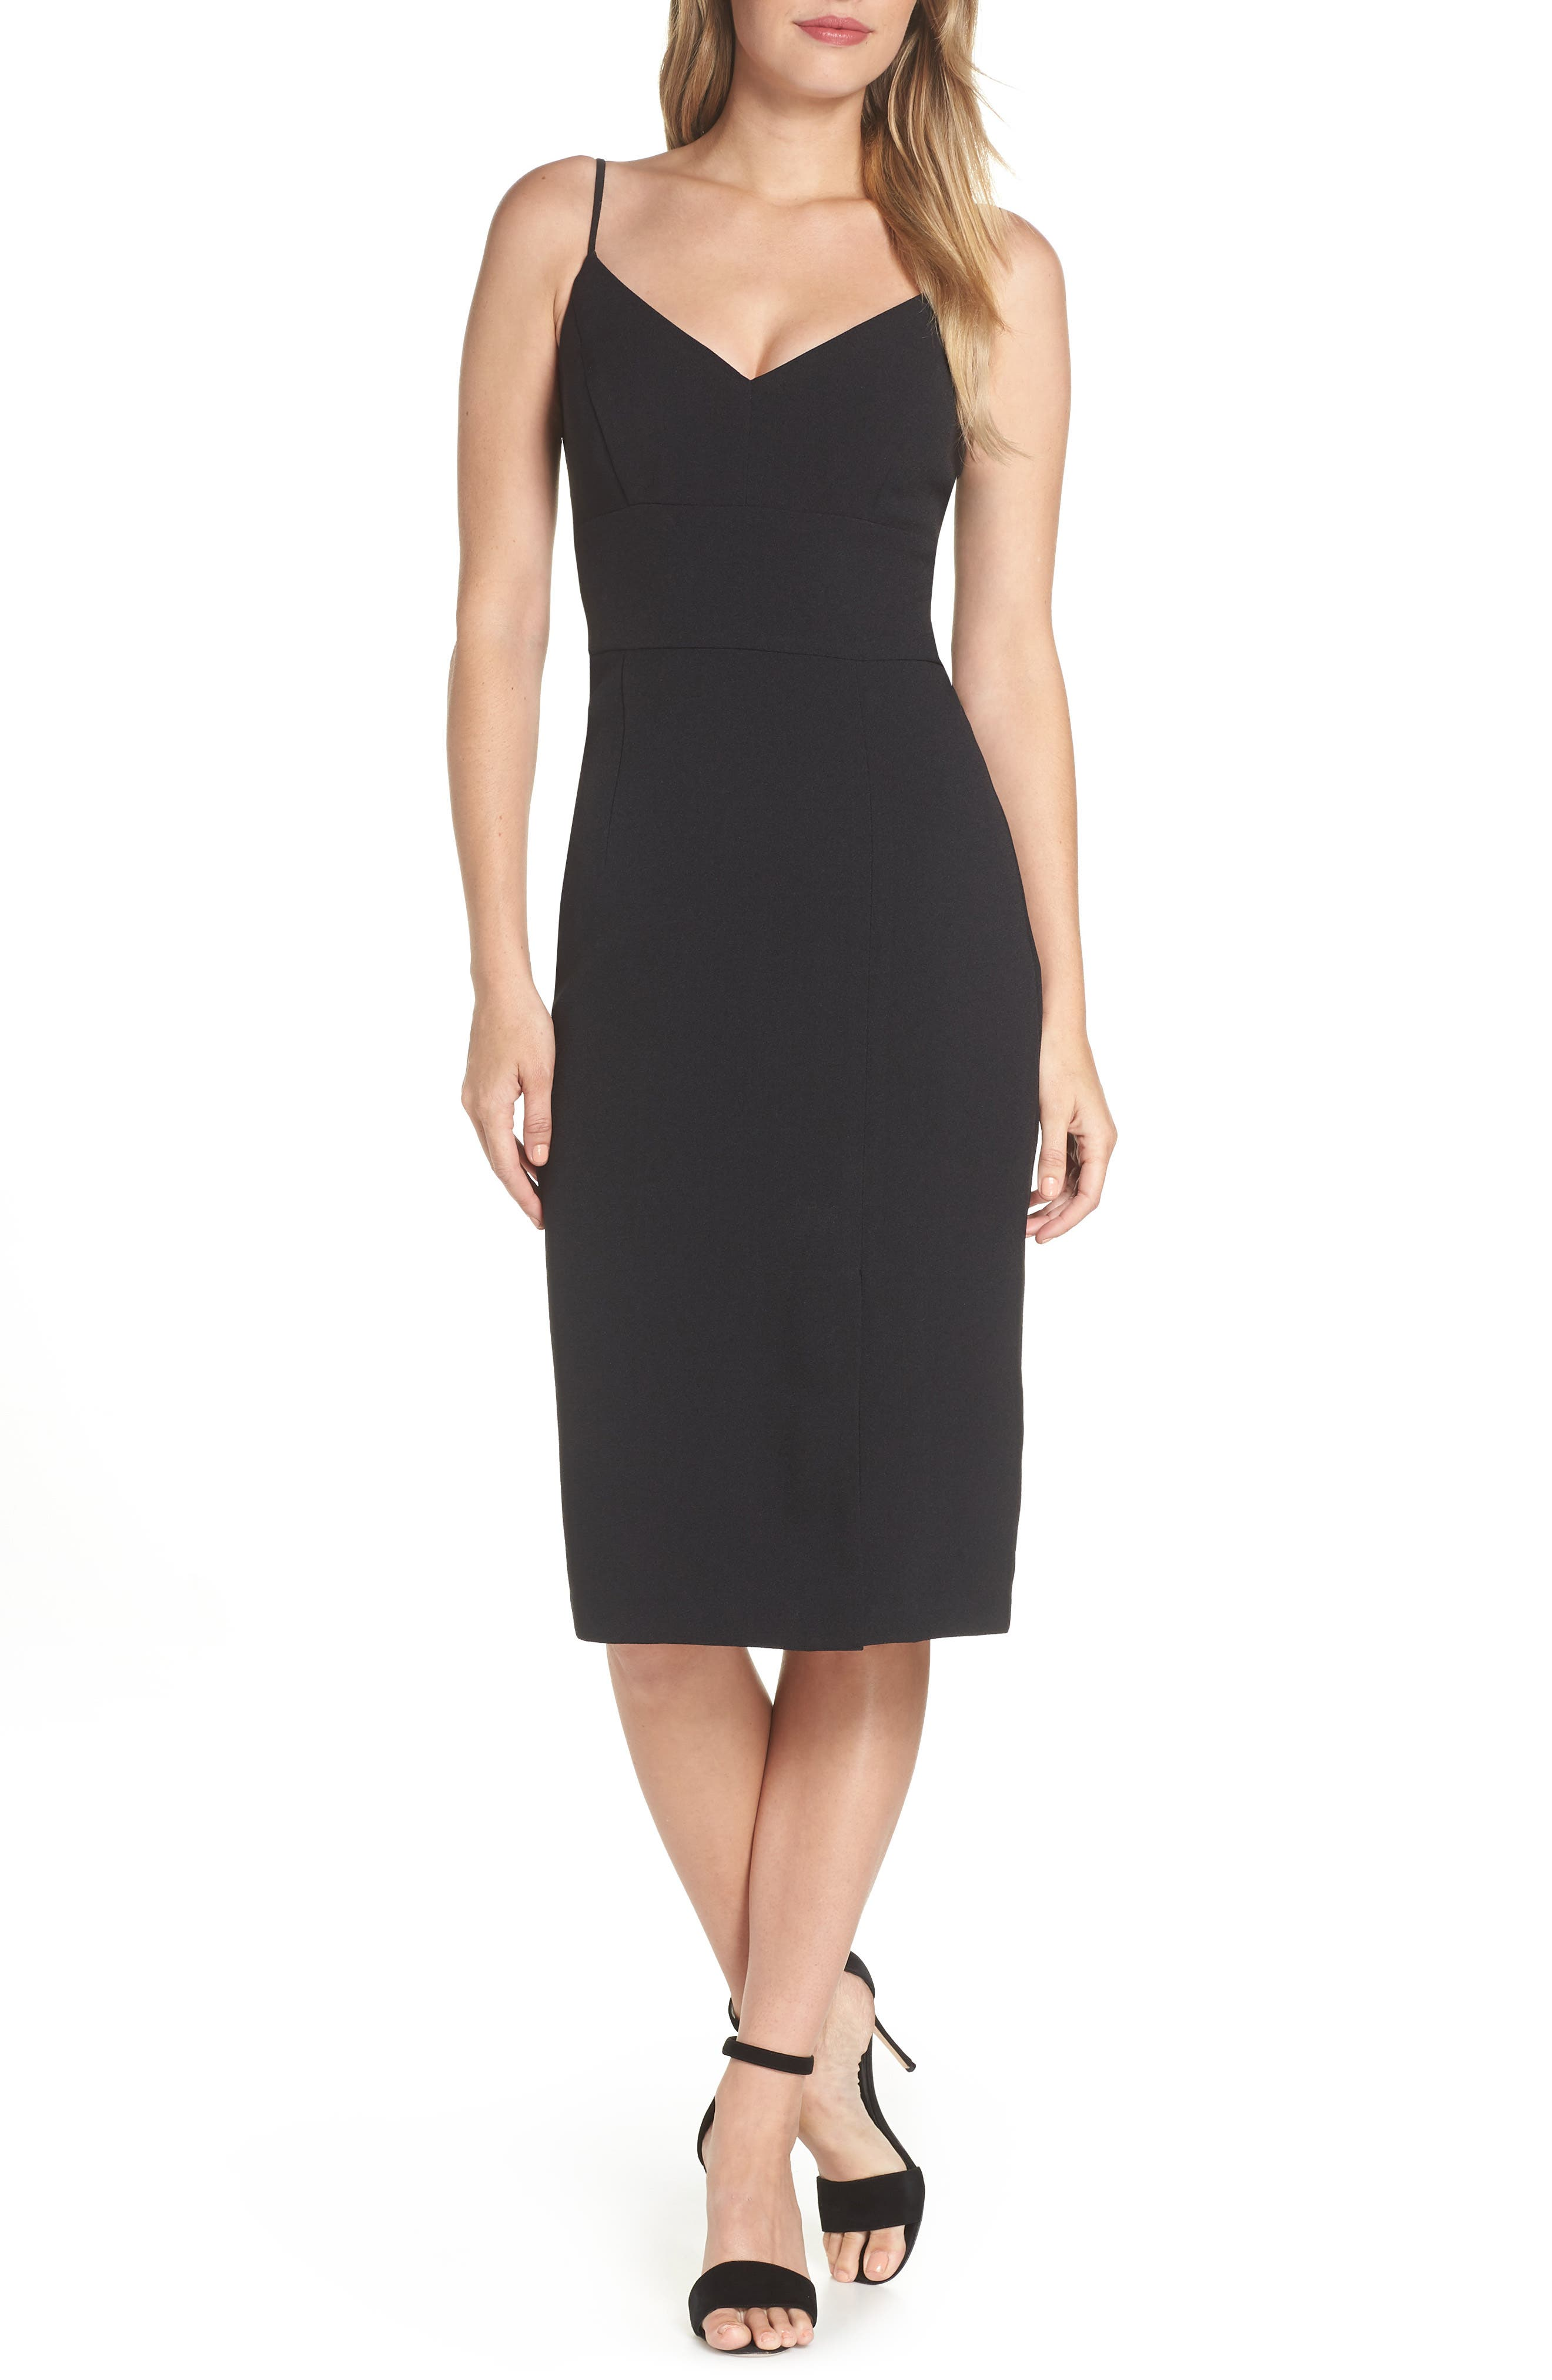 Sleeveless Cocktail Dress,                             Main thumbnail 1, color,                             BLACK